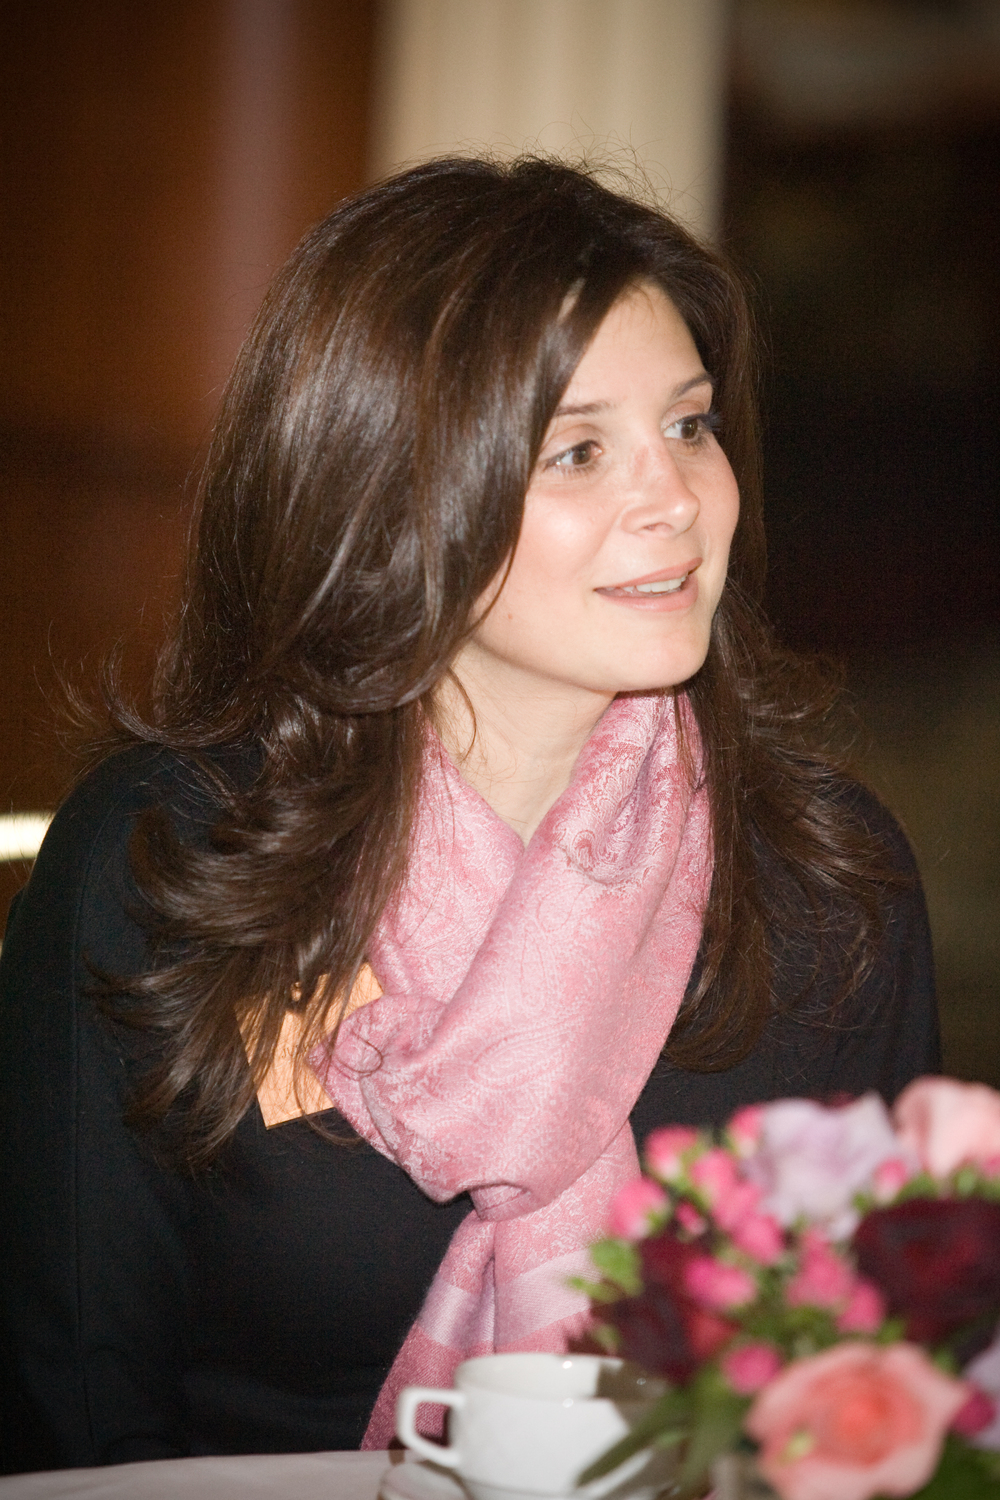 Food-ology founder and behavioral food expert, Juliet A. Boghossian